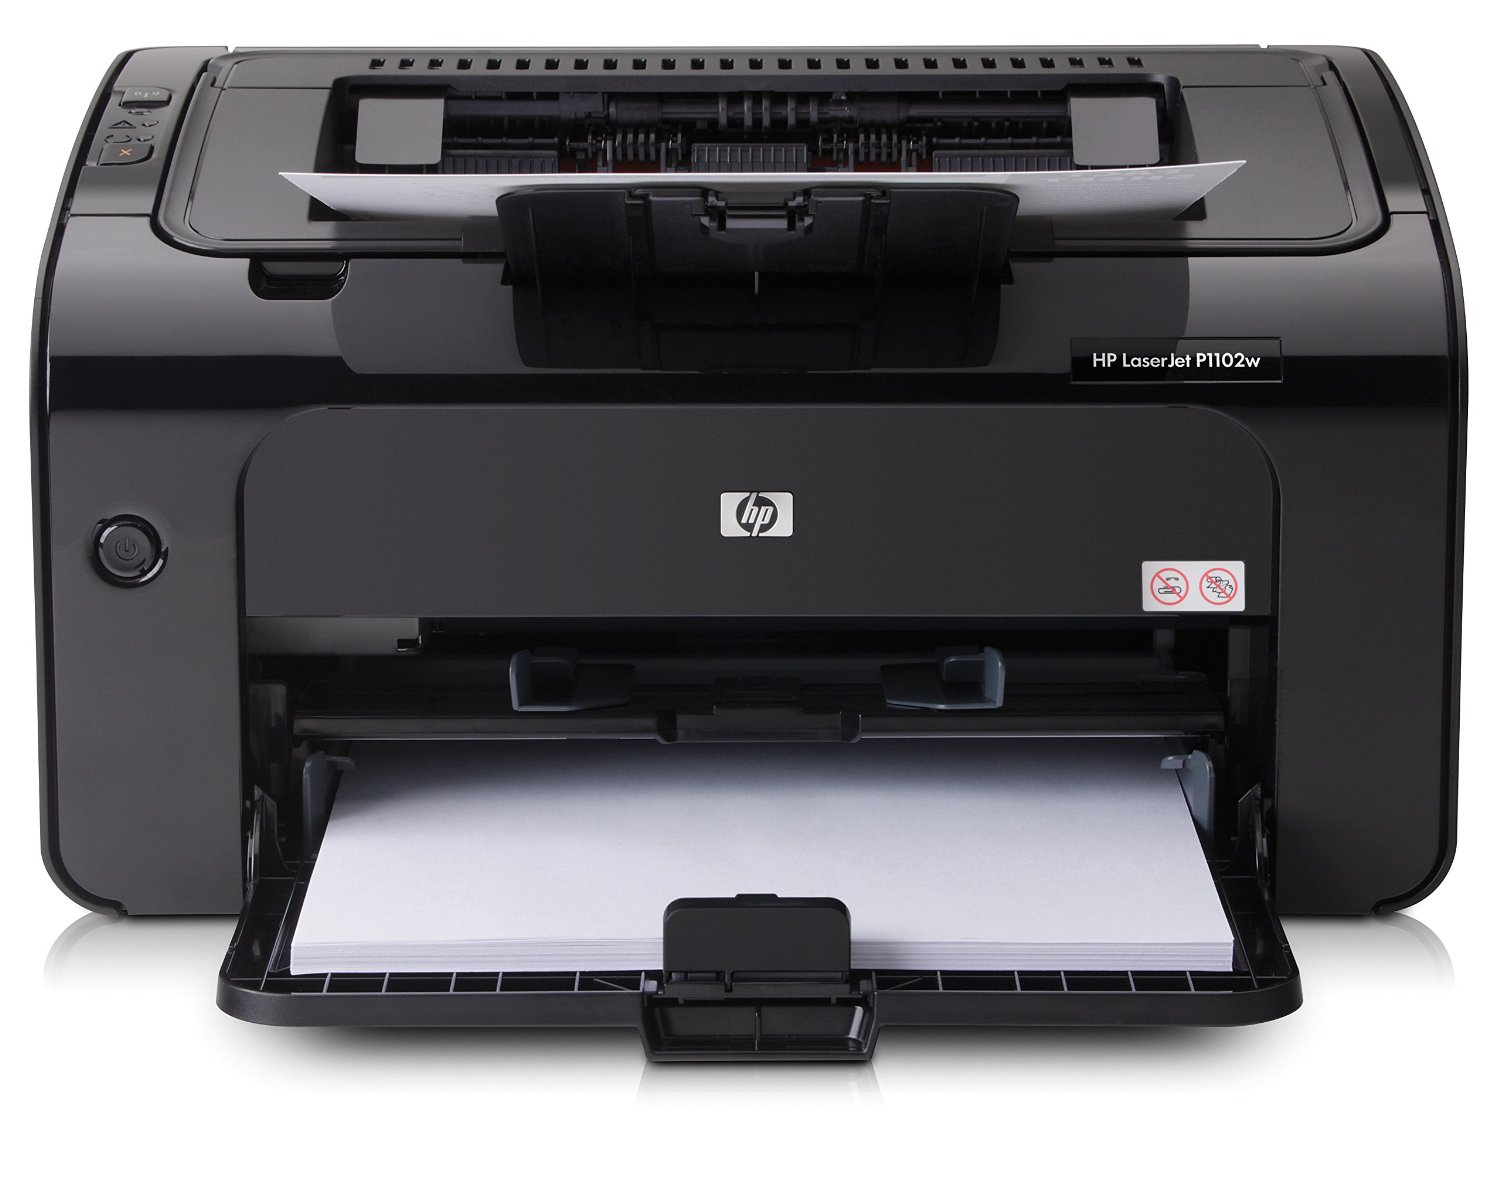 Hp officejet 6700 drivers and software printer download for.